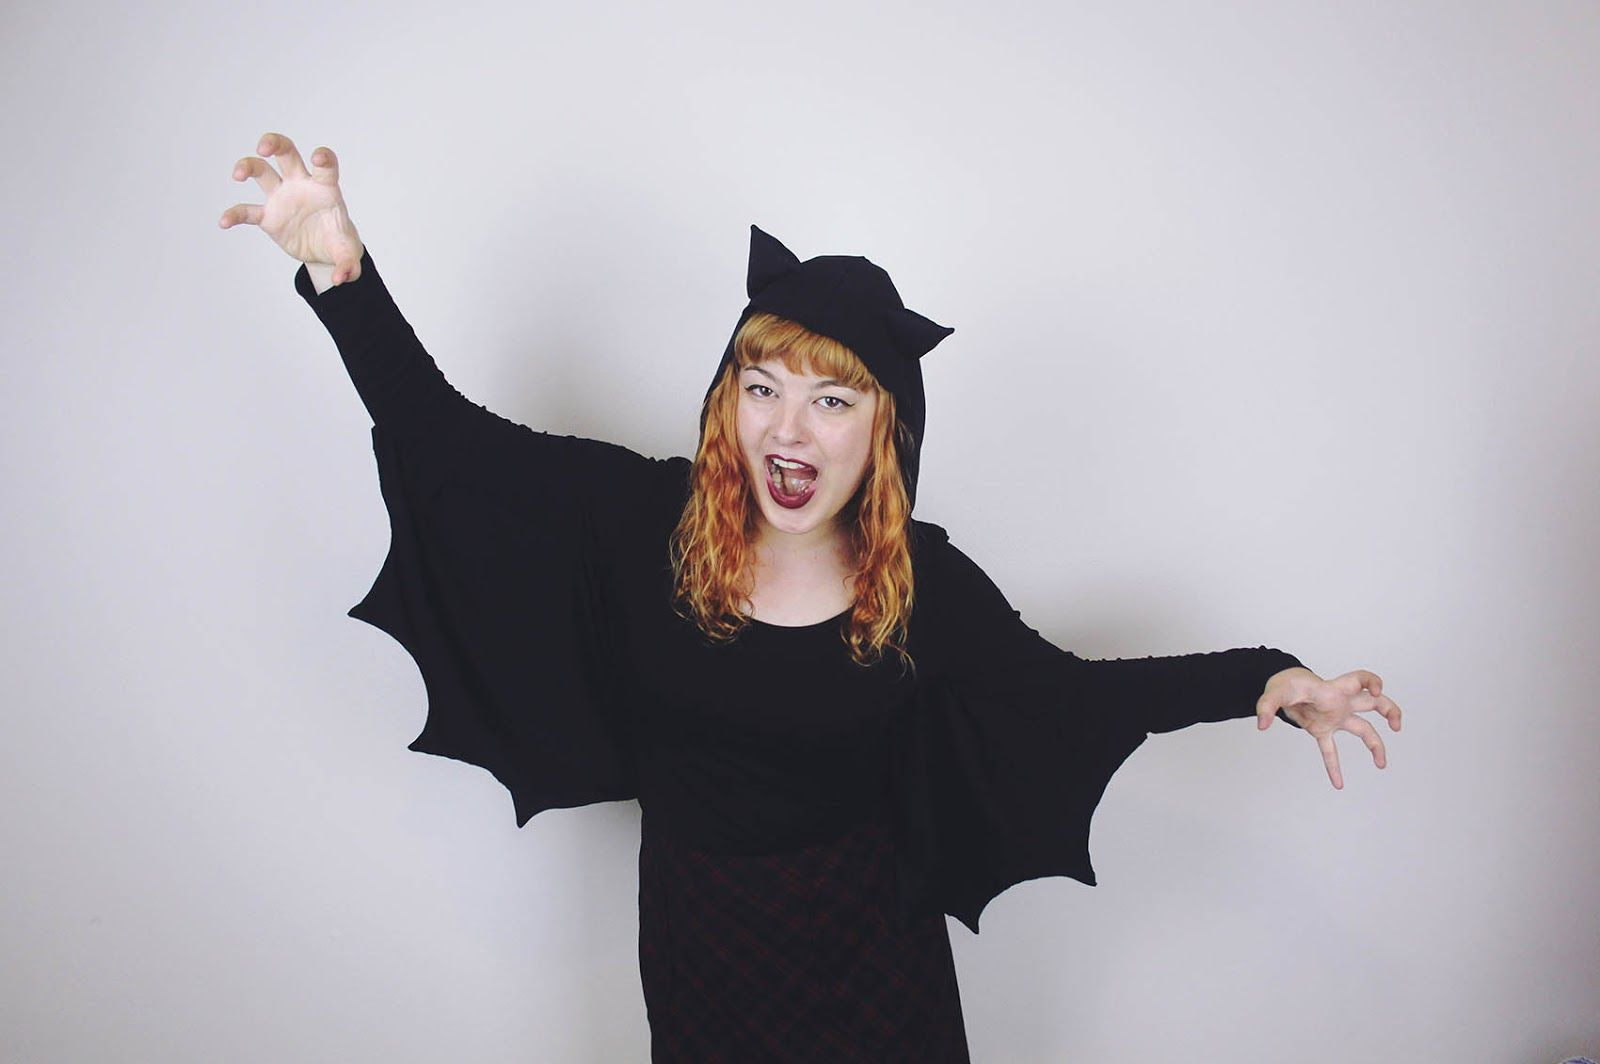 The Pineneedle Collective: DIY Bat Wing Hooded Shirt | Make Thrift Buy #26 - Halloween Edition!